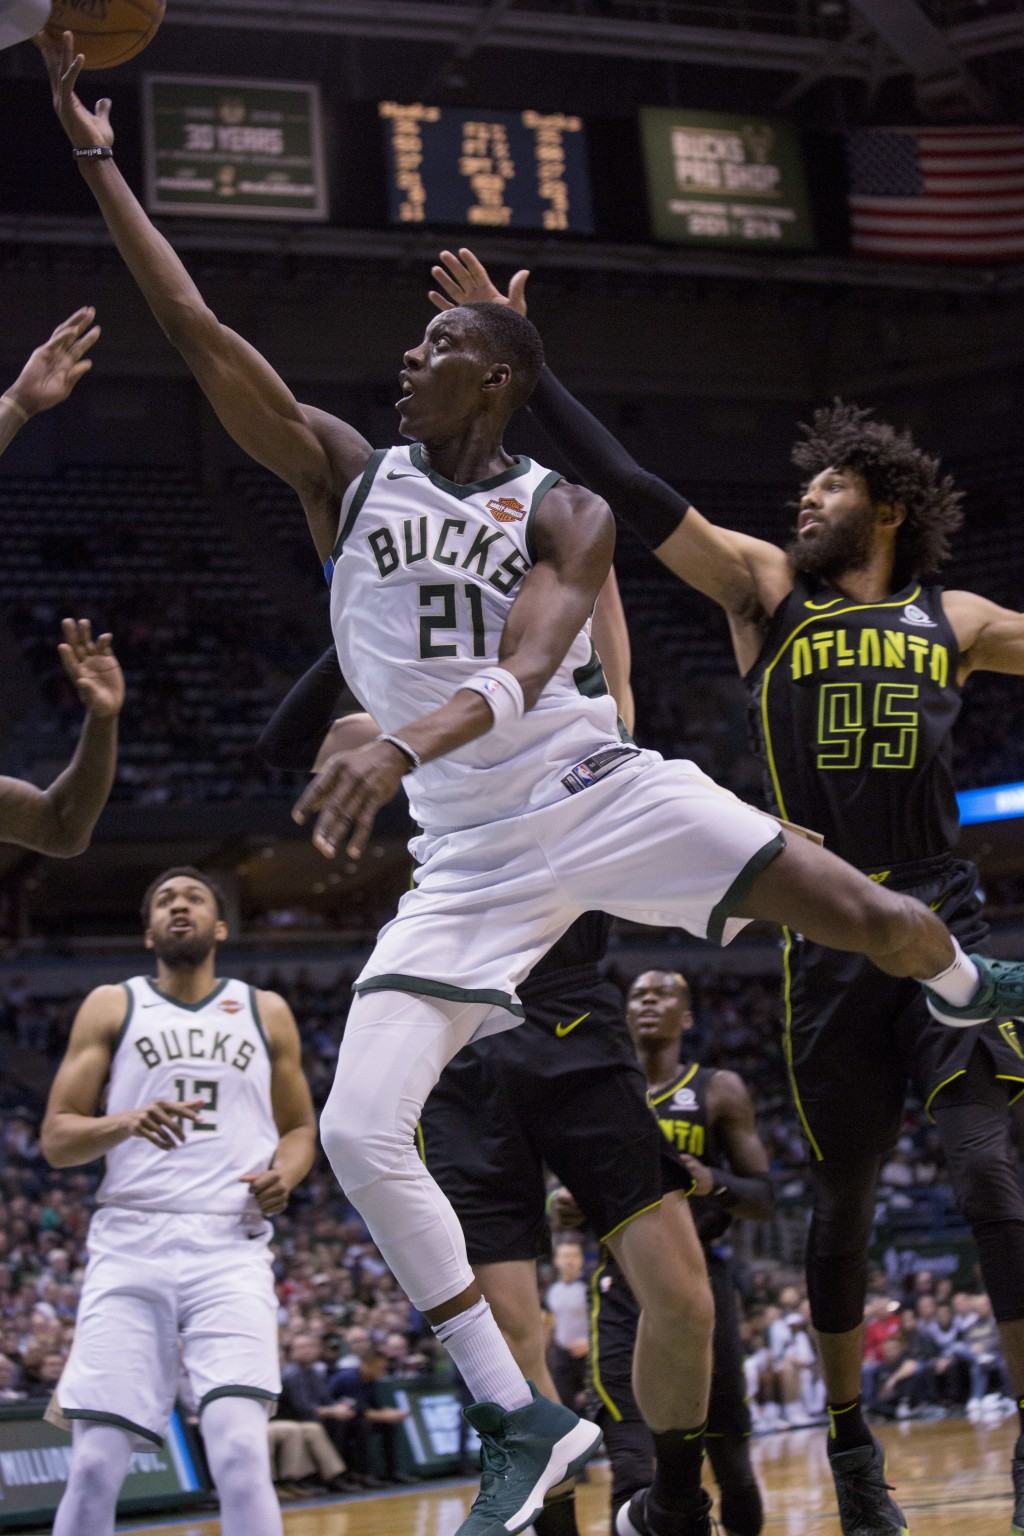 Milwaukee Bucks guard Tony Snell, center, goes up for a basket against the Atlanta Hawks during the first half of an NBA basketball game Tuesday, Feb.